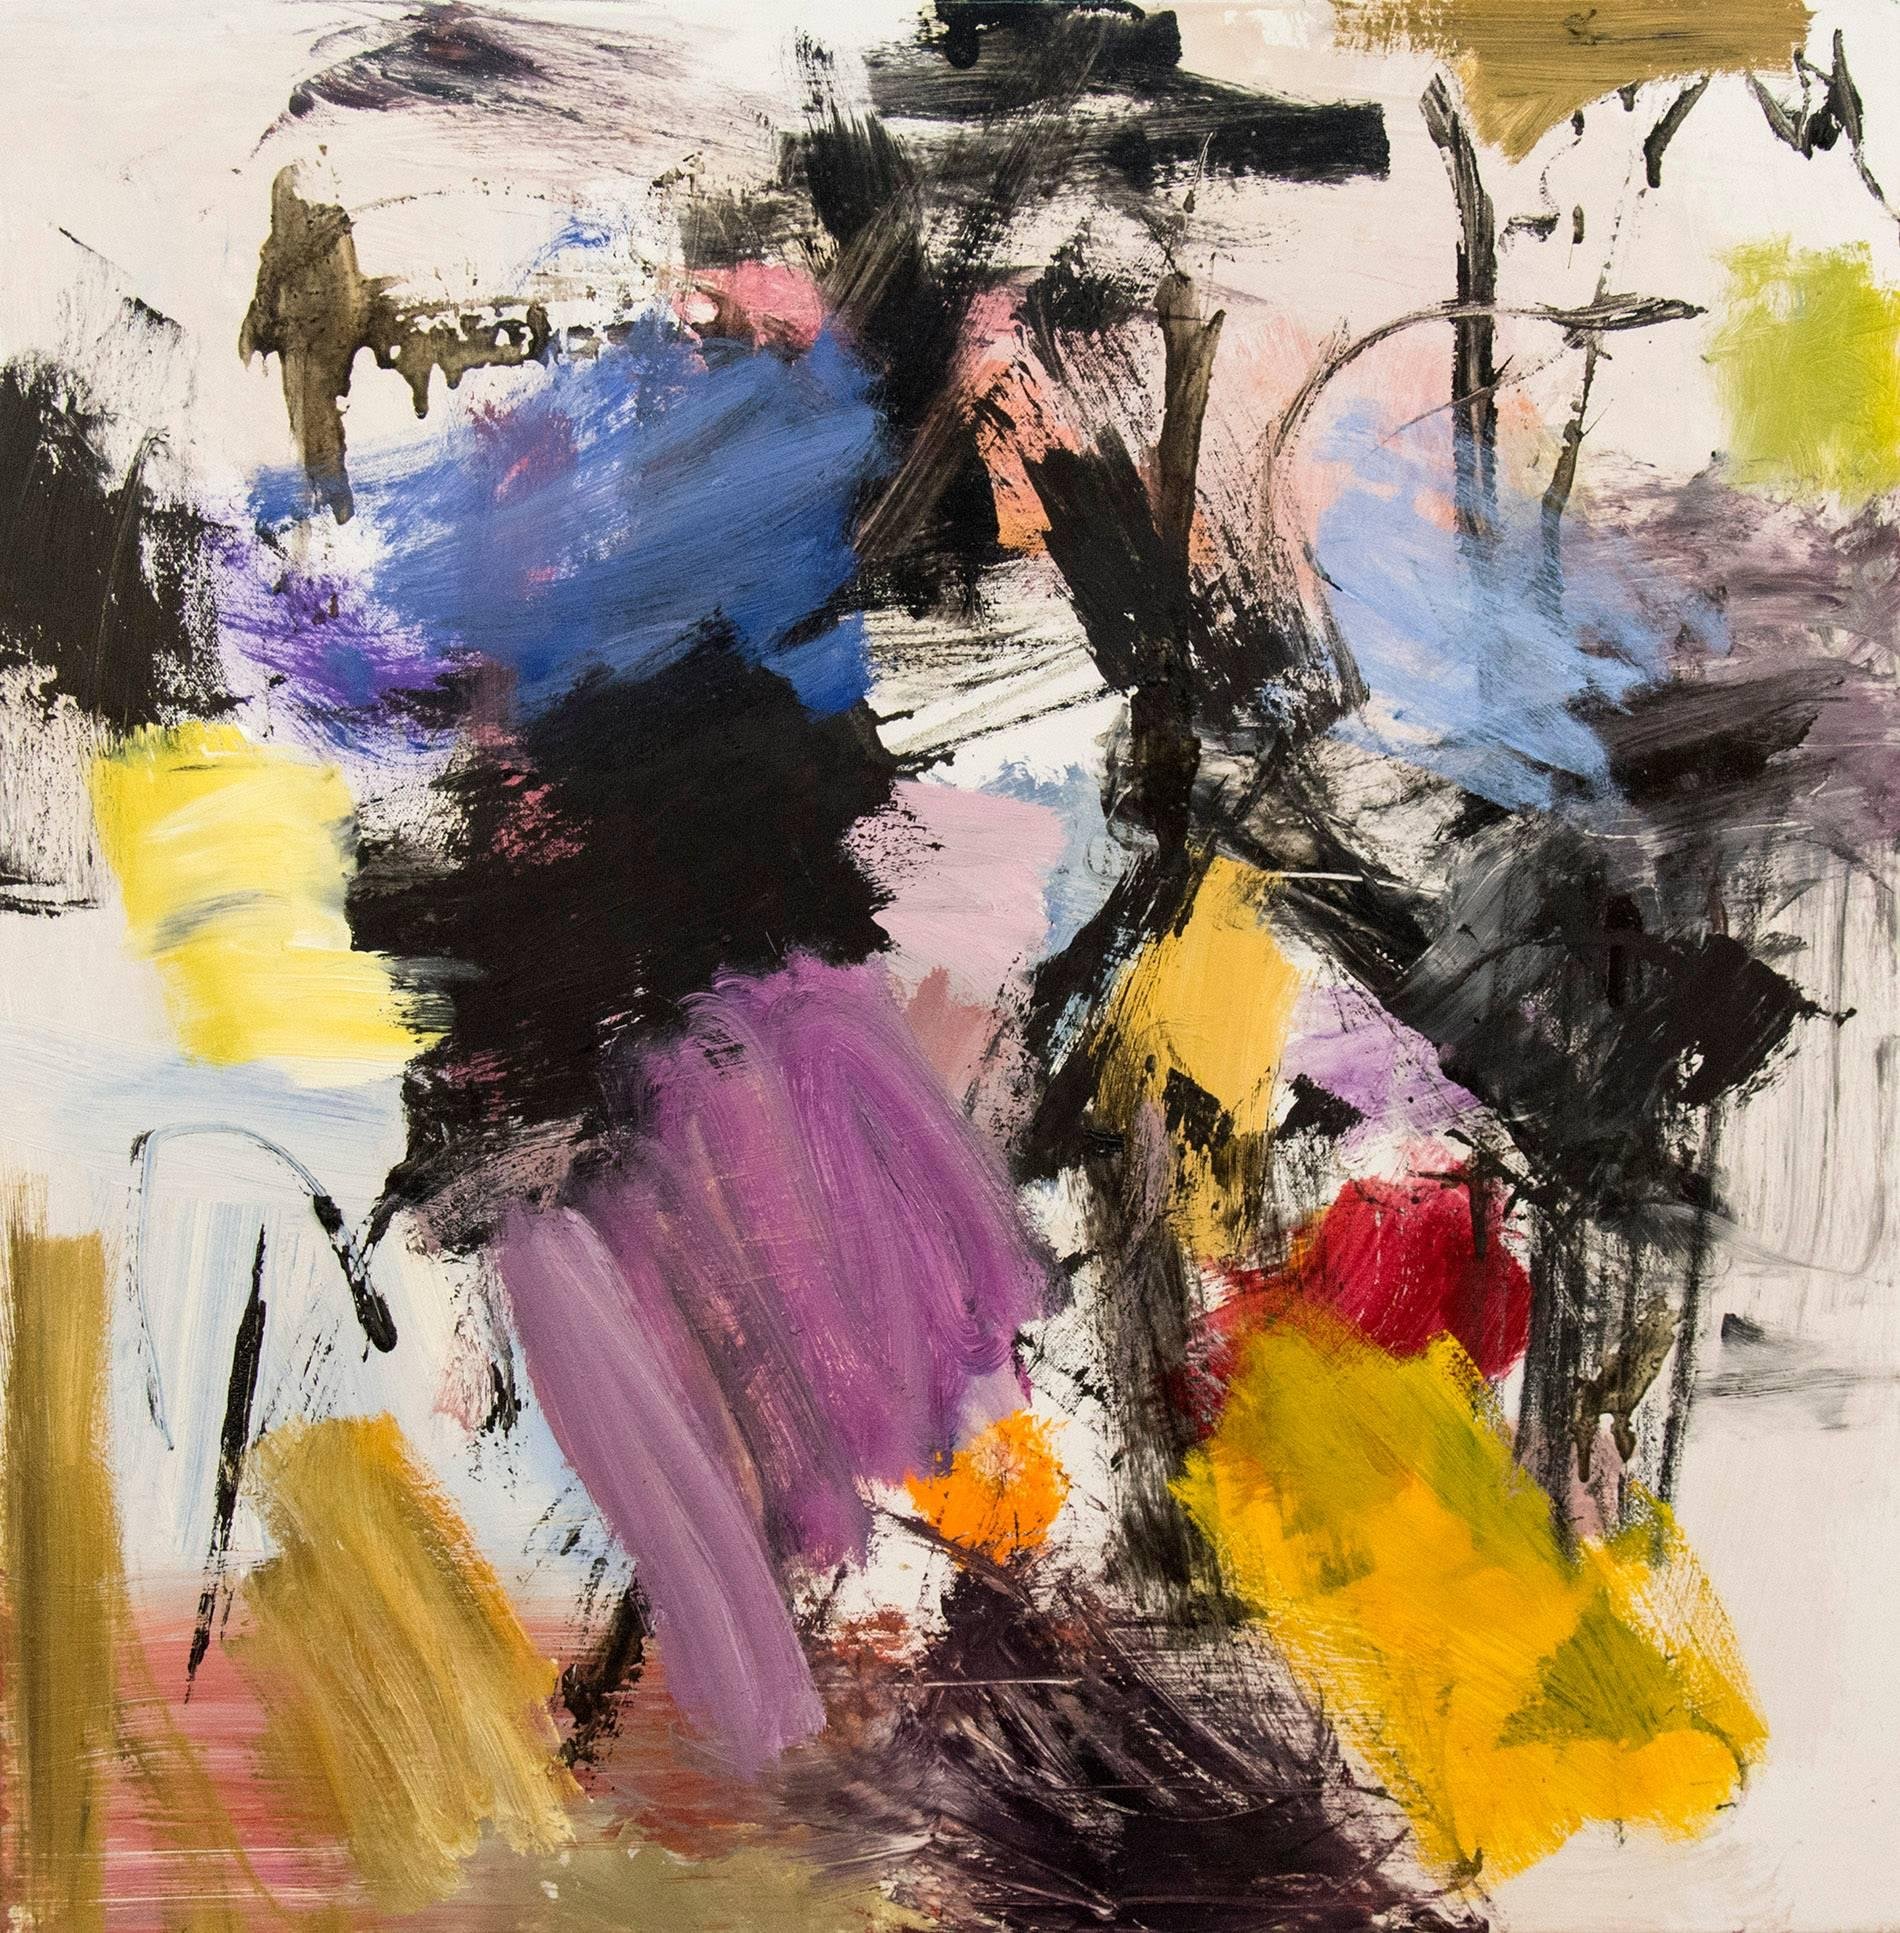 Ouvert No 17 - small, red, yellow, pink, blue, gestural abstract, oil on canvas